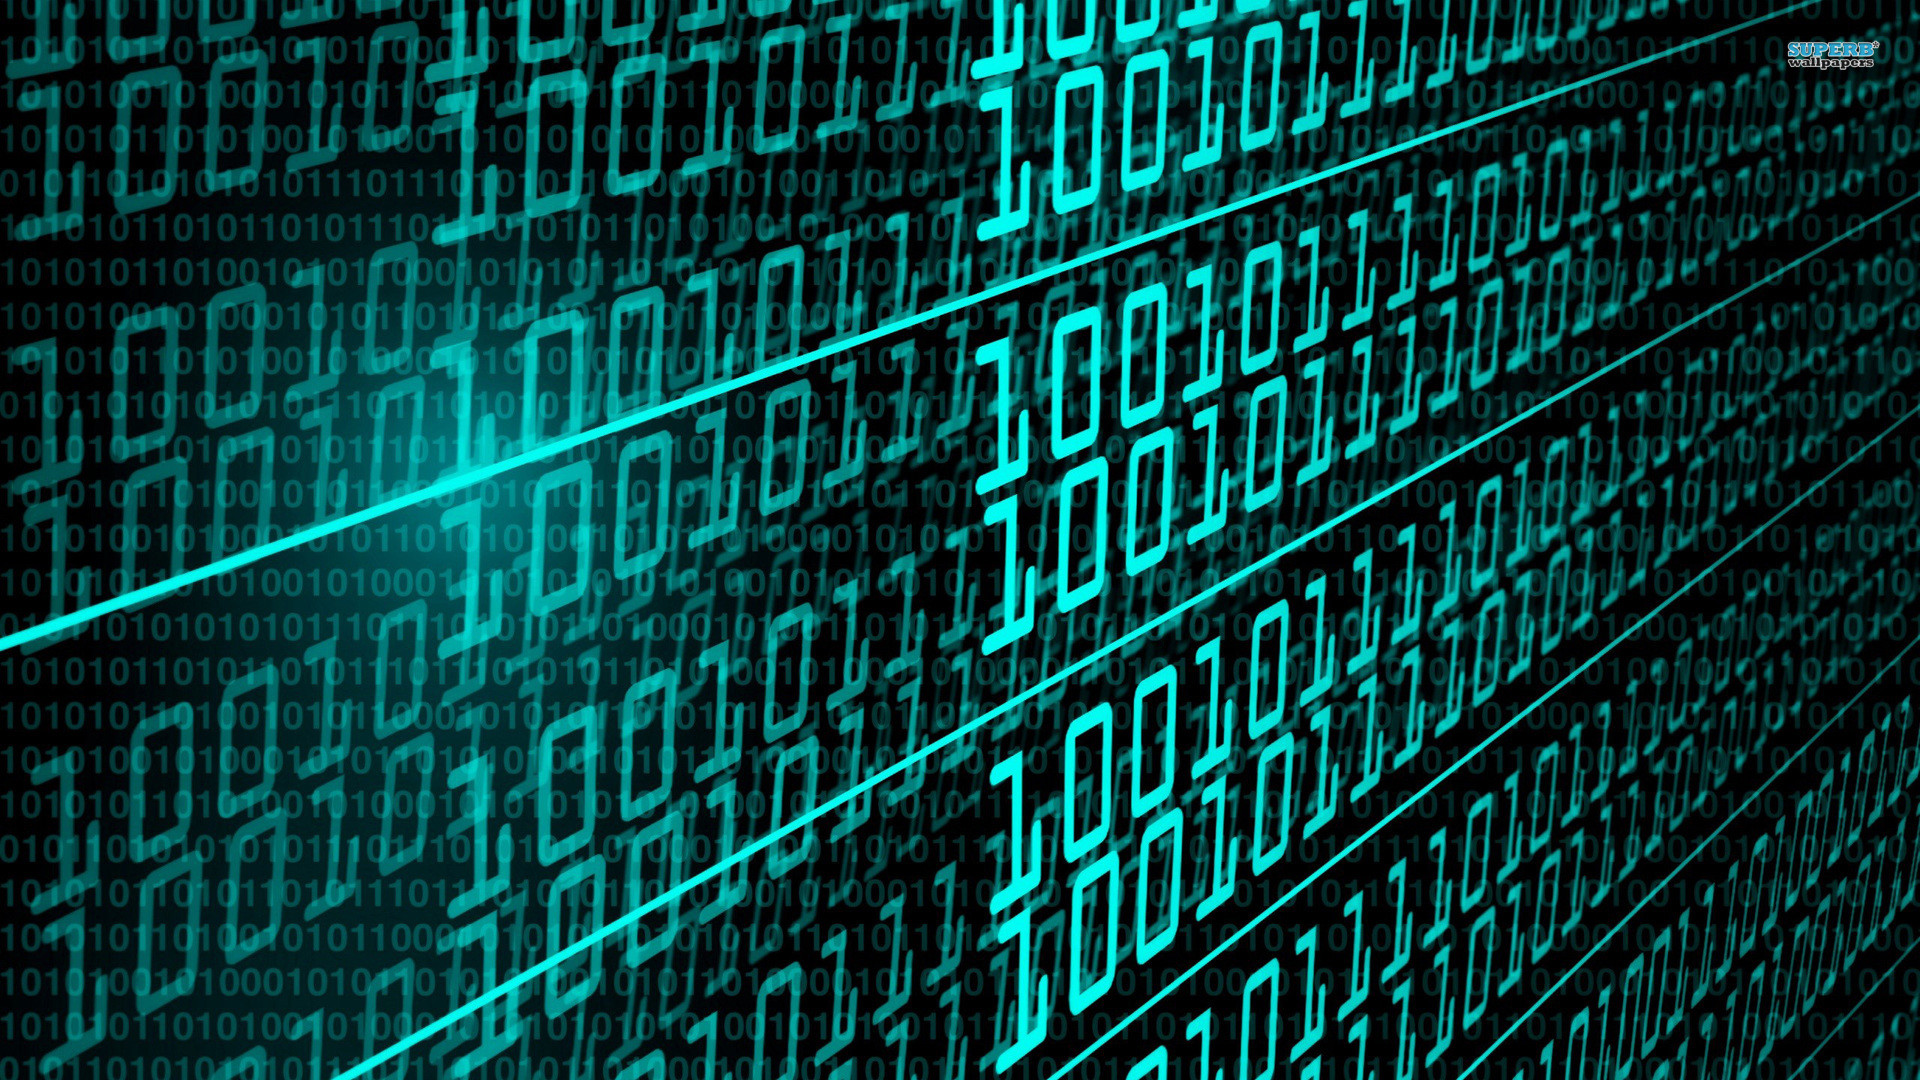 World information technology background images with binary code | Binary  code wallpaper 1920×1080